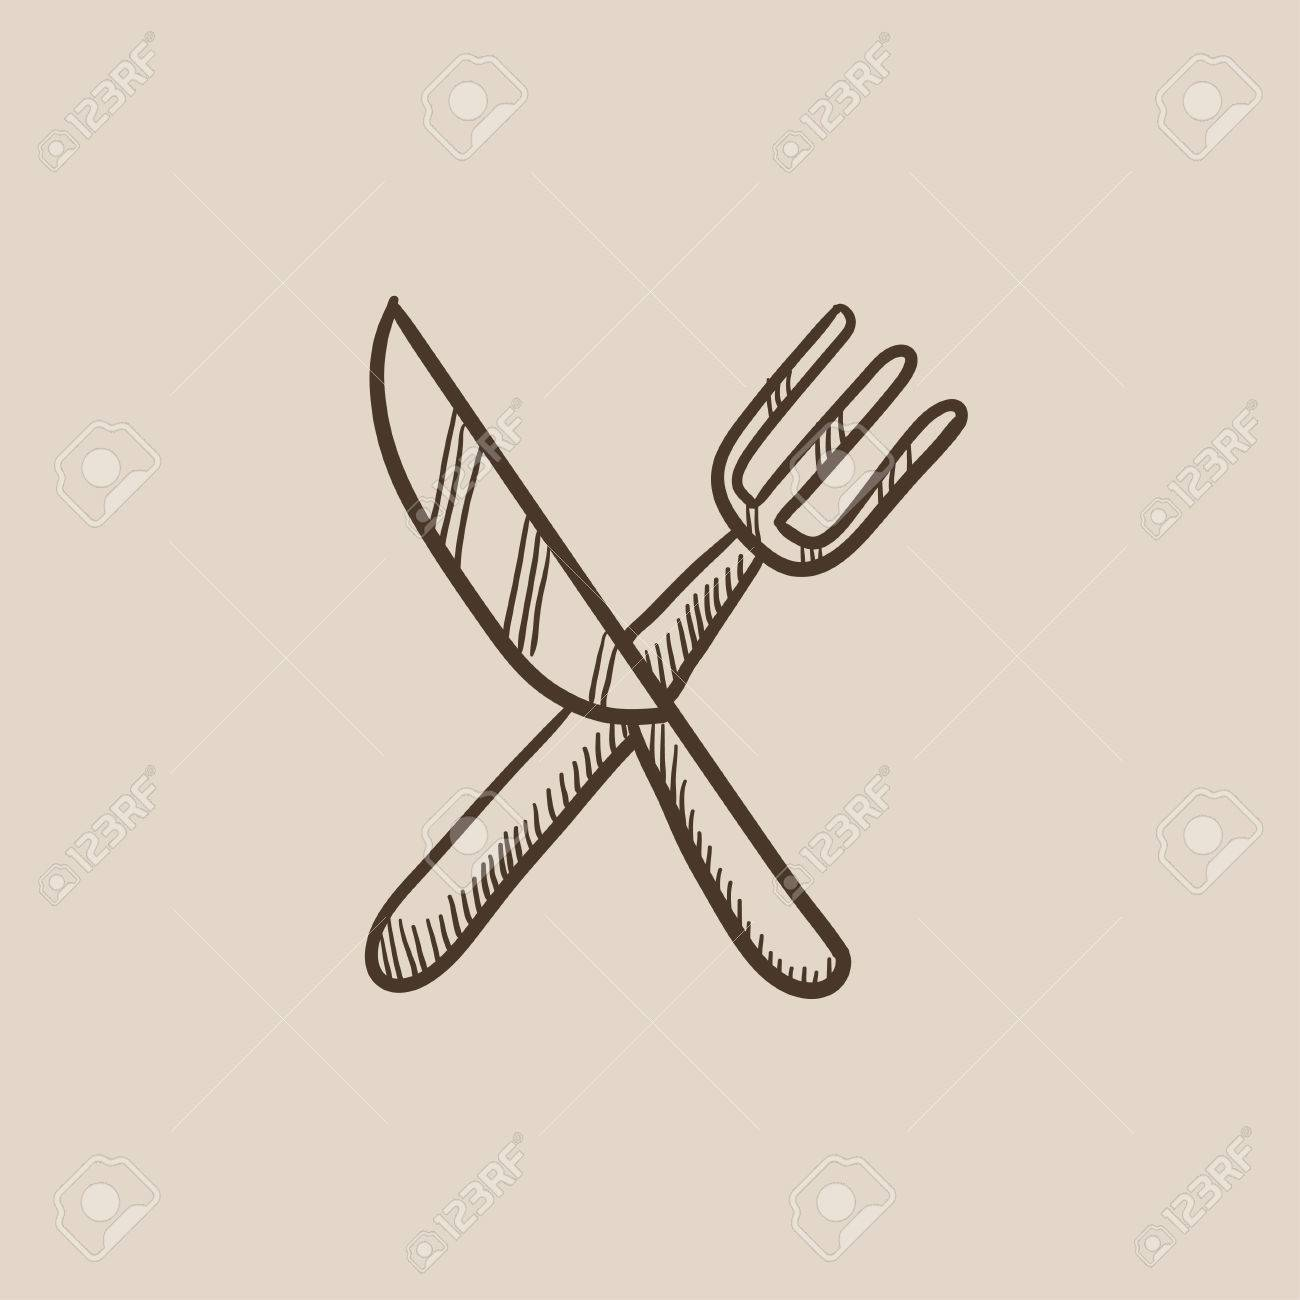 1300x1300 Crossed Knife Fork Sketch Icon For Web, Mobile